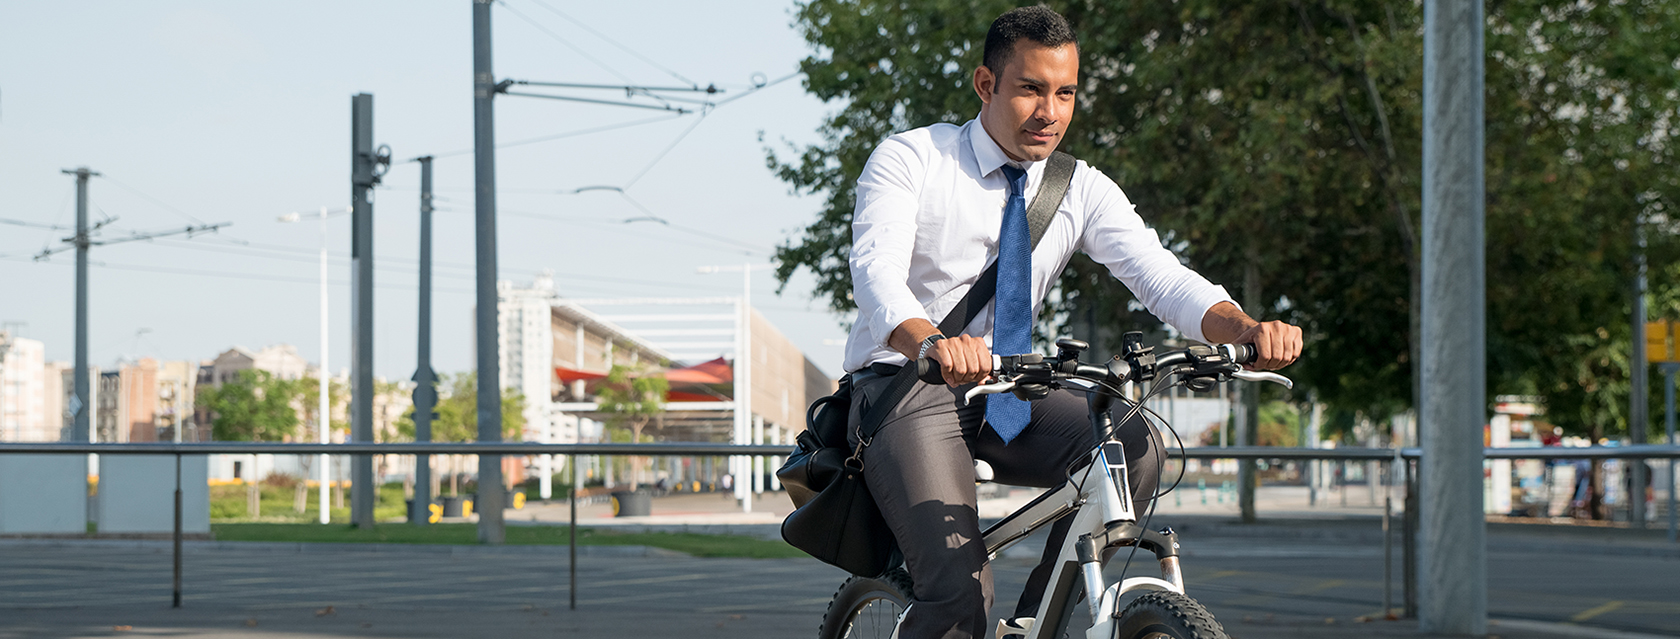 Photo of a person biking to work